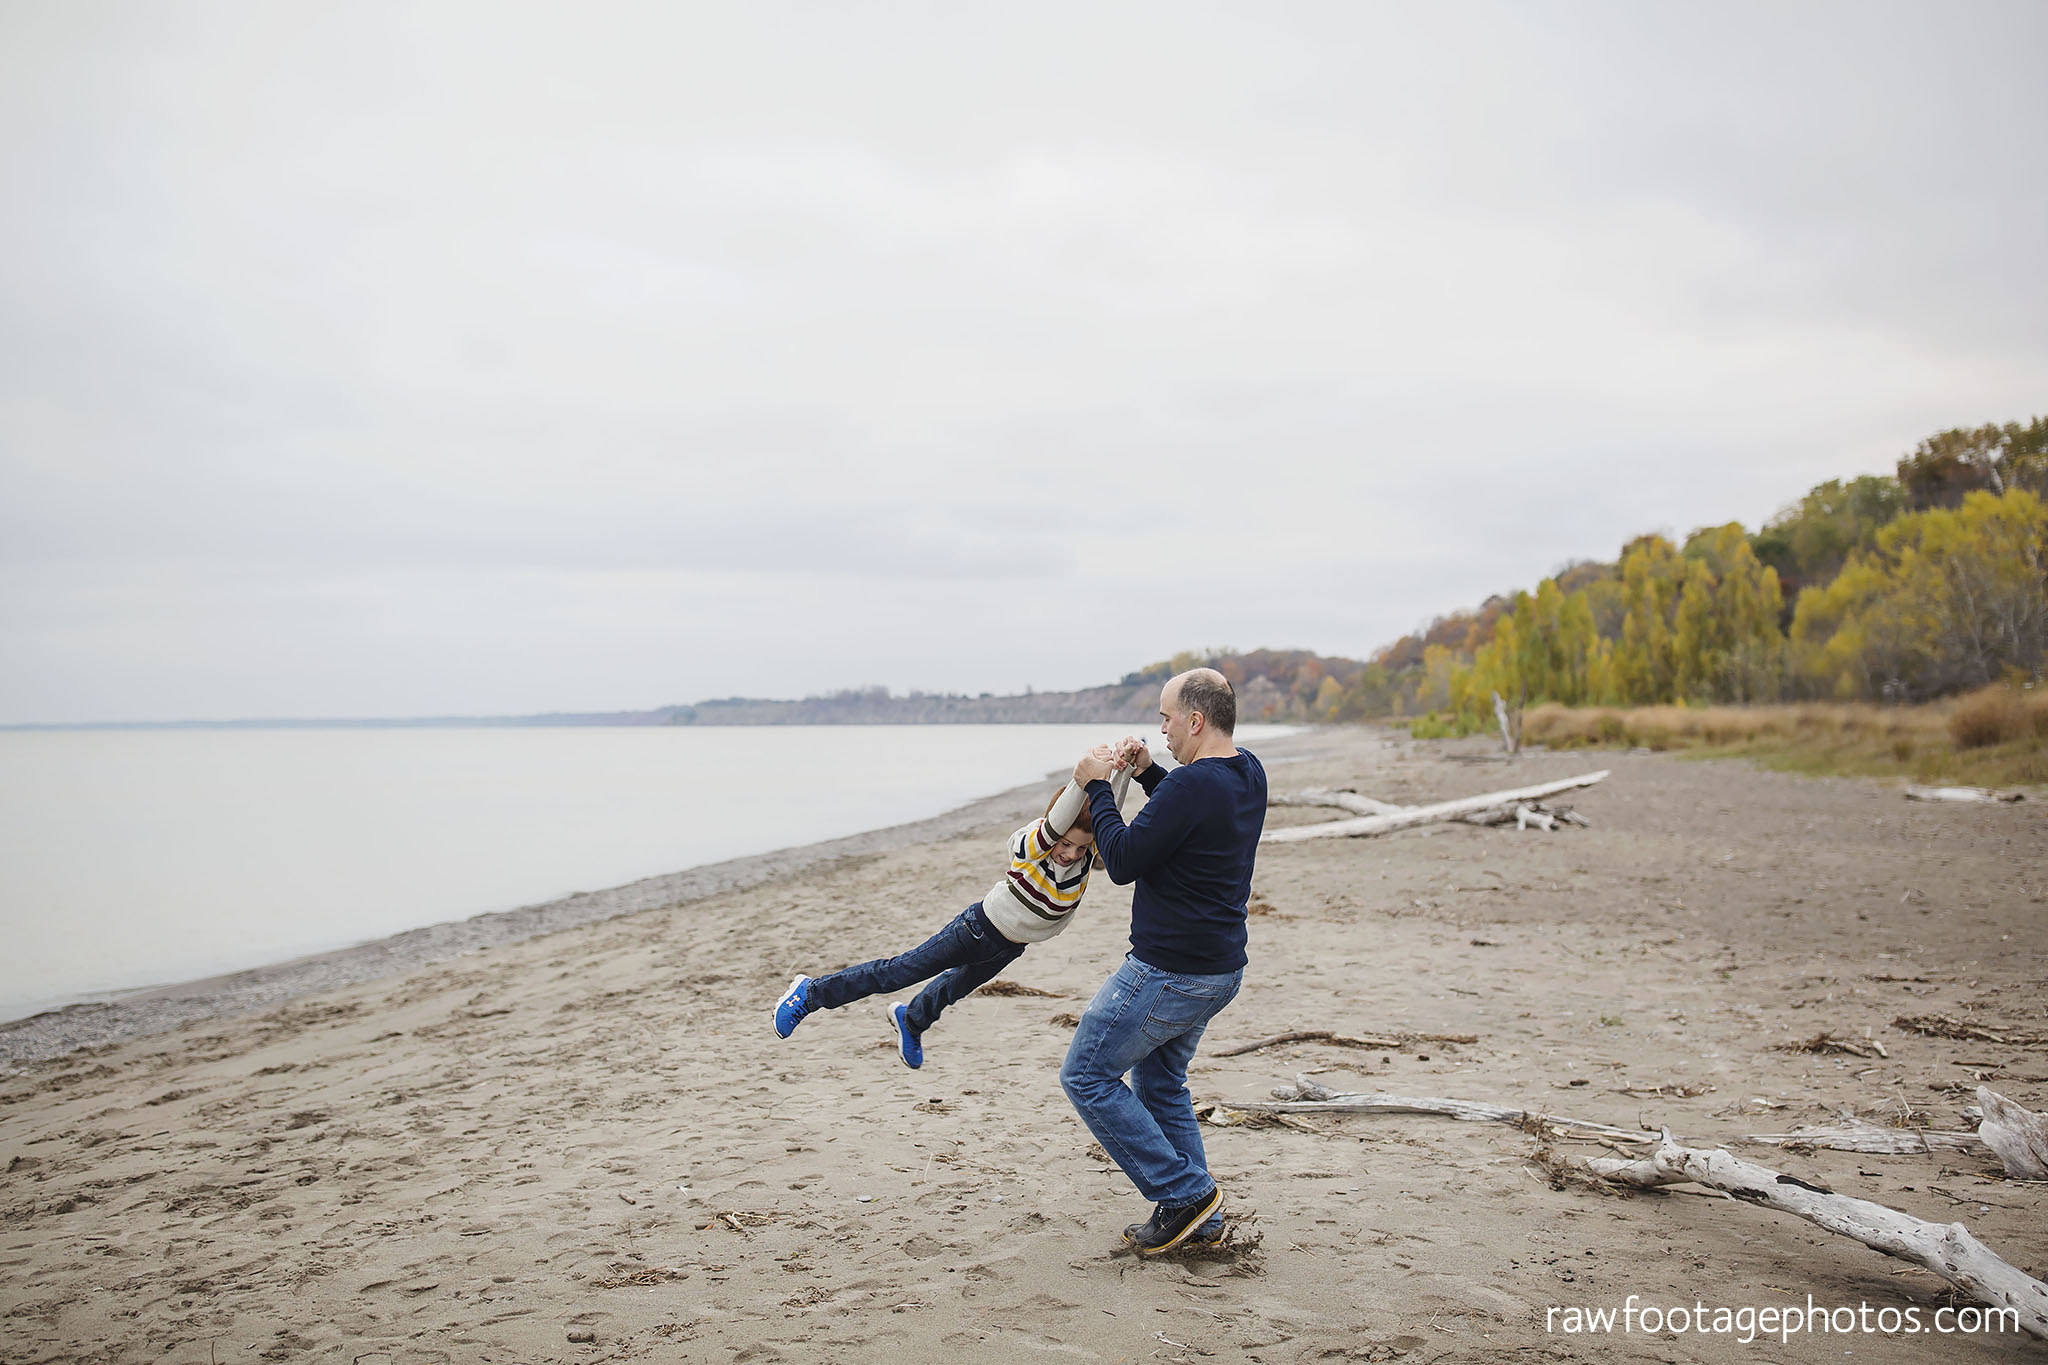 london_ontario_family_photographer-port_stanley_photography-raw_footage_photography-family_photos-beach_photos-fall_family_photos-lifestyle_family_photography-candid_photographer010.jpg